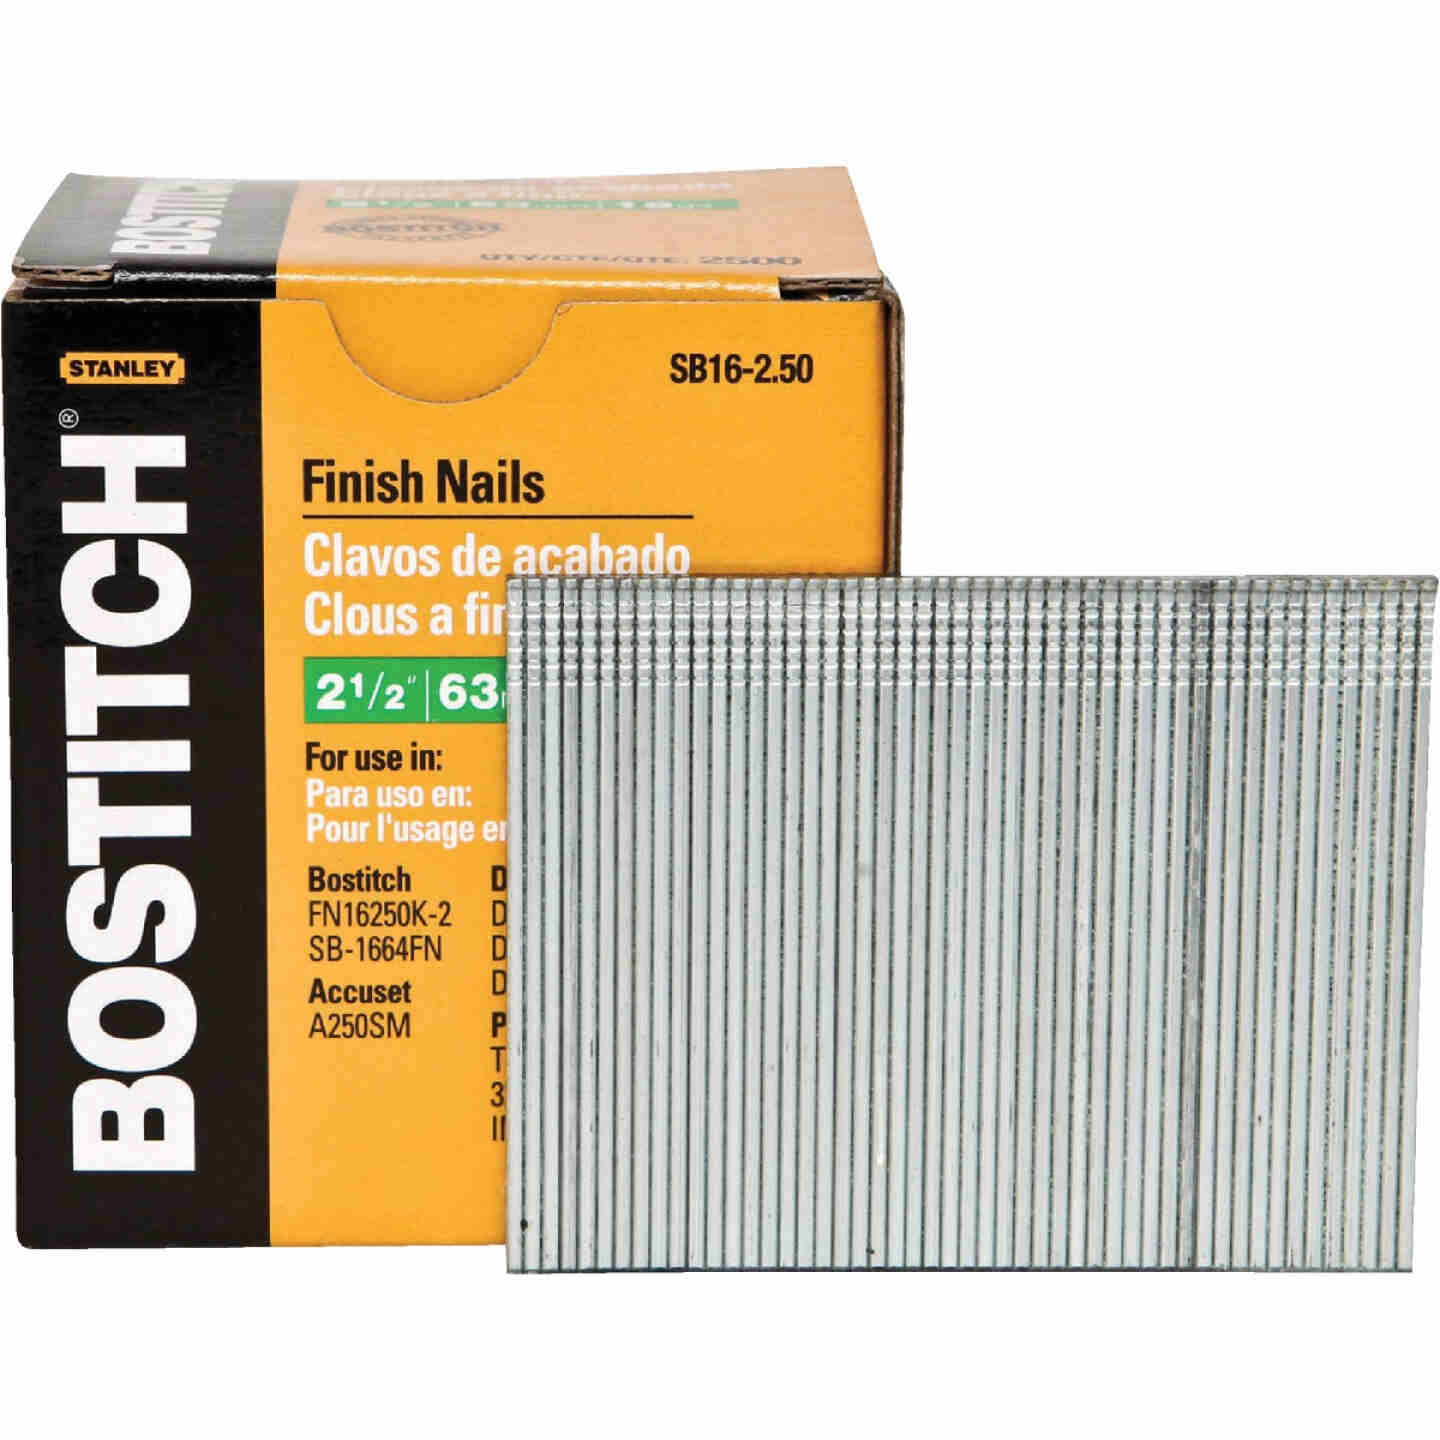 Bostitch 16-Gauge Coated Straight Finish Nail, 2-1/2 In. (2500 Ct.) Image 1